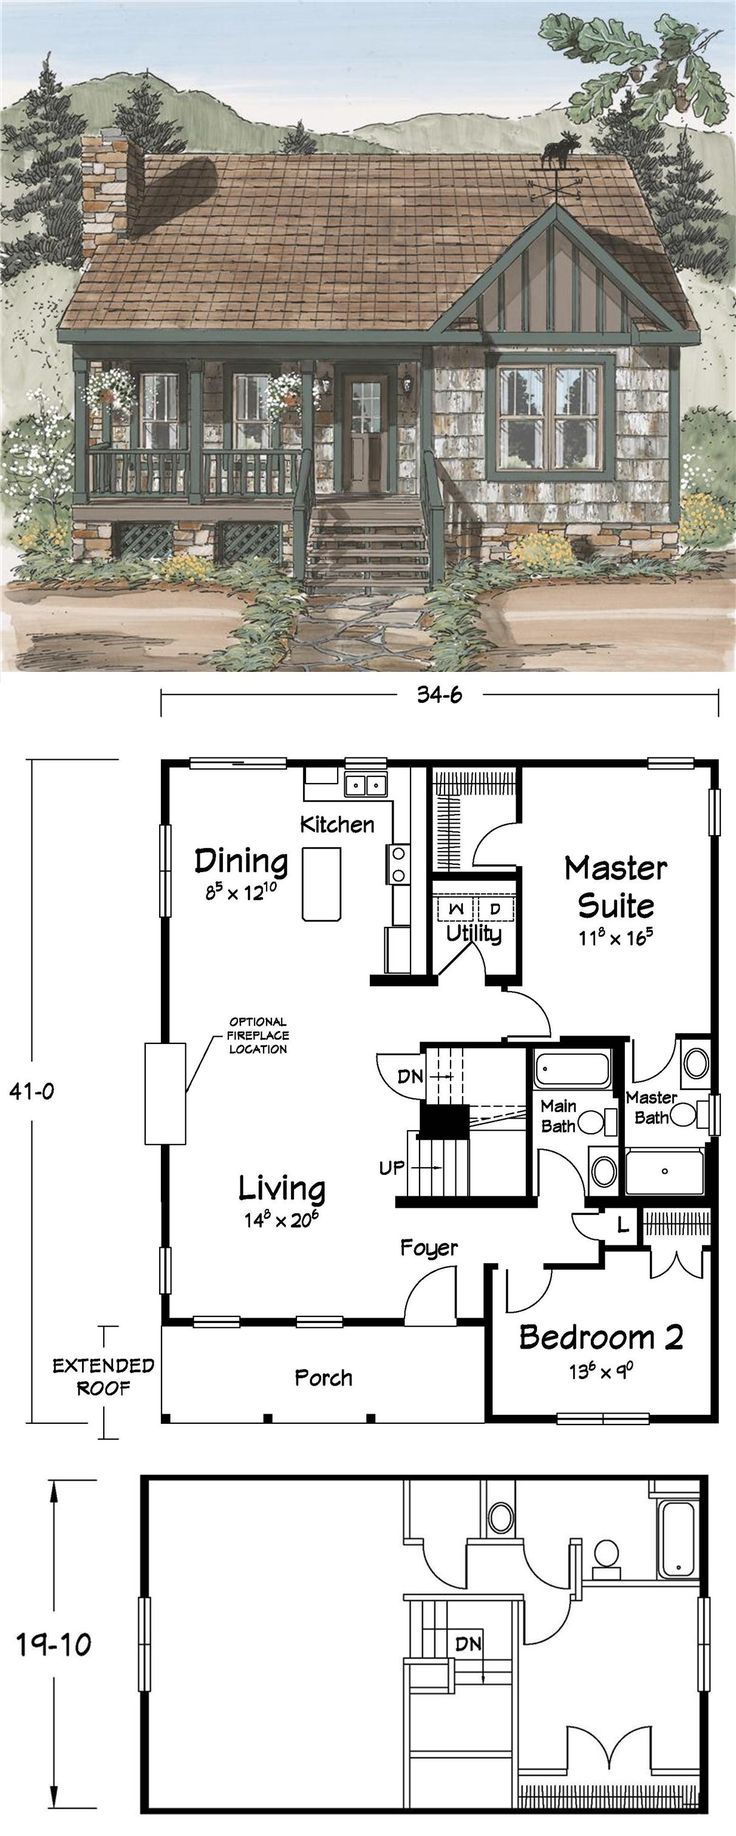 Cute floor plans tiny homes pinterest cabin small Cabin floor plan